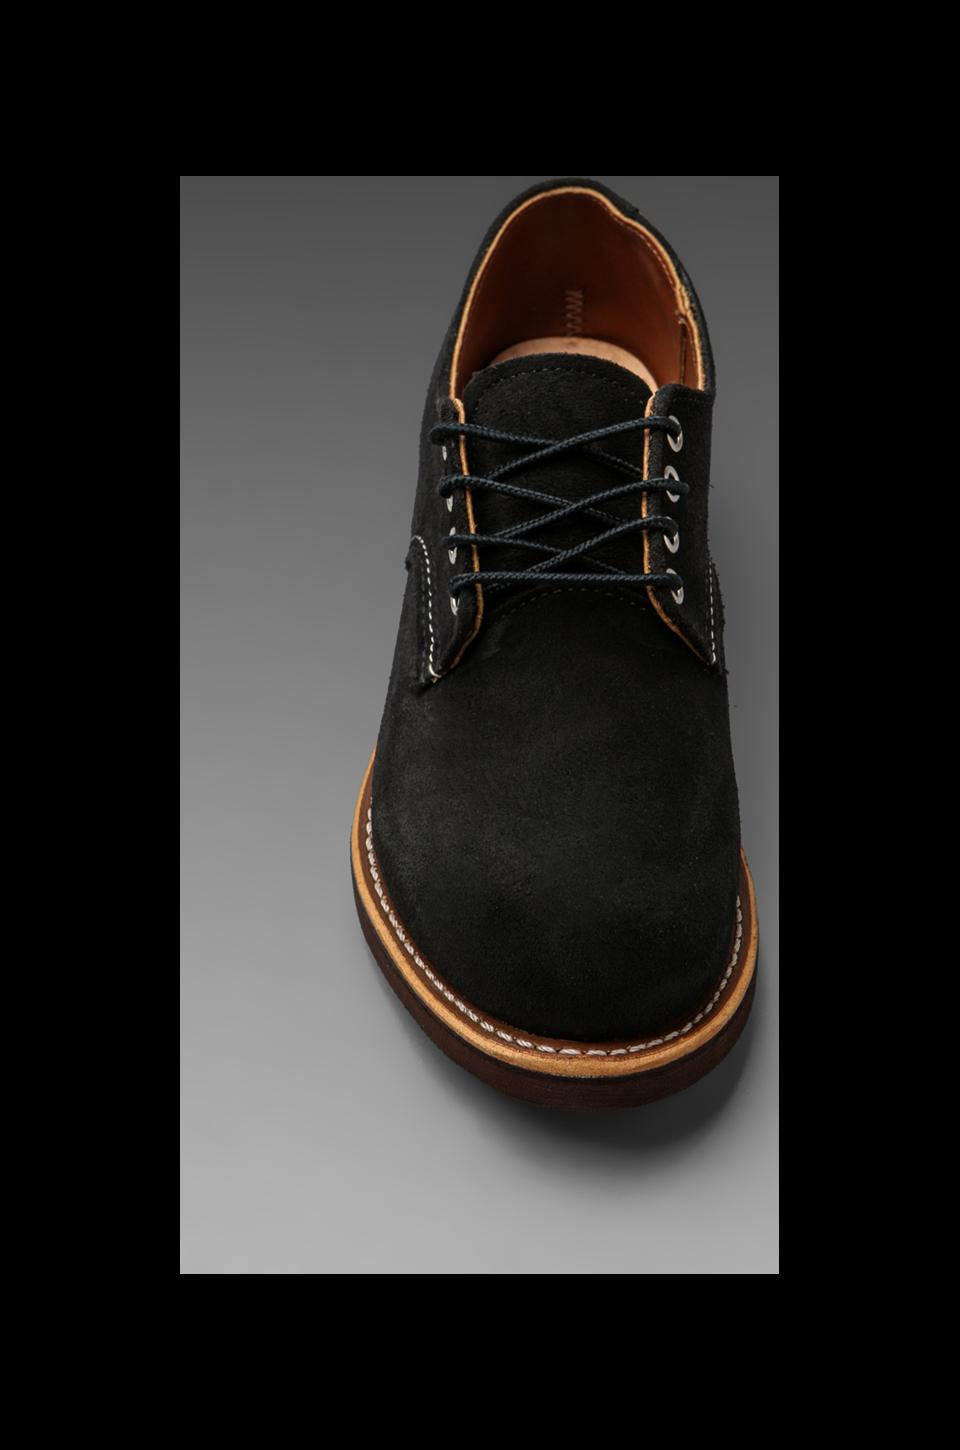 Red Wing Shoes Work Oxford in Black Abilene